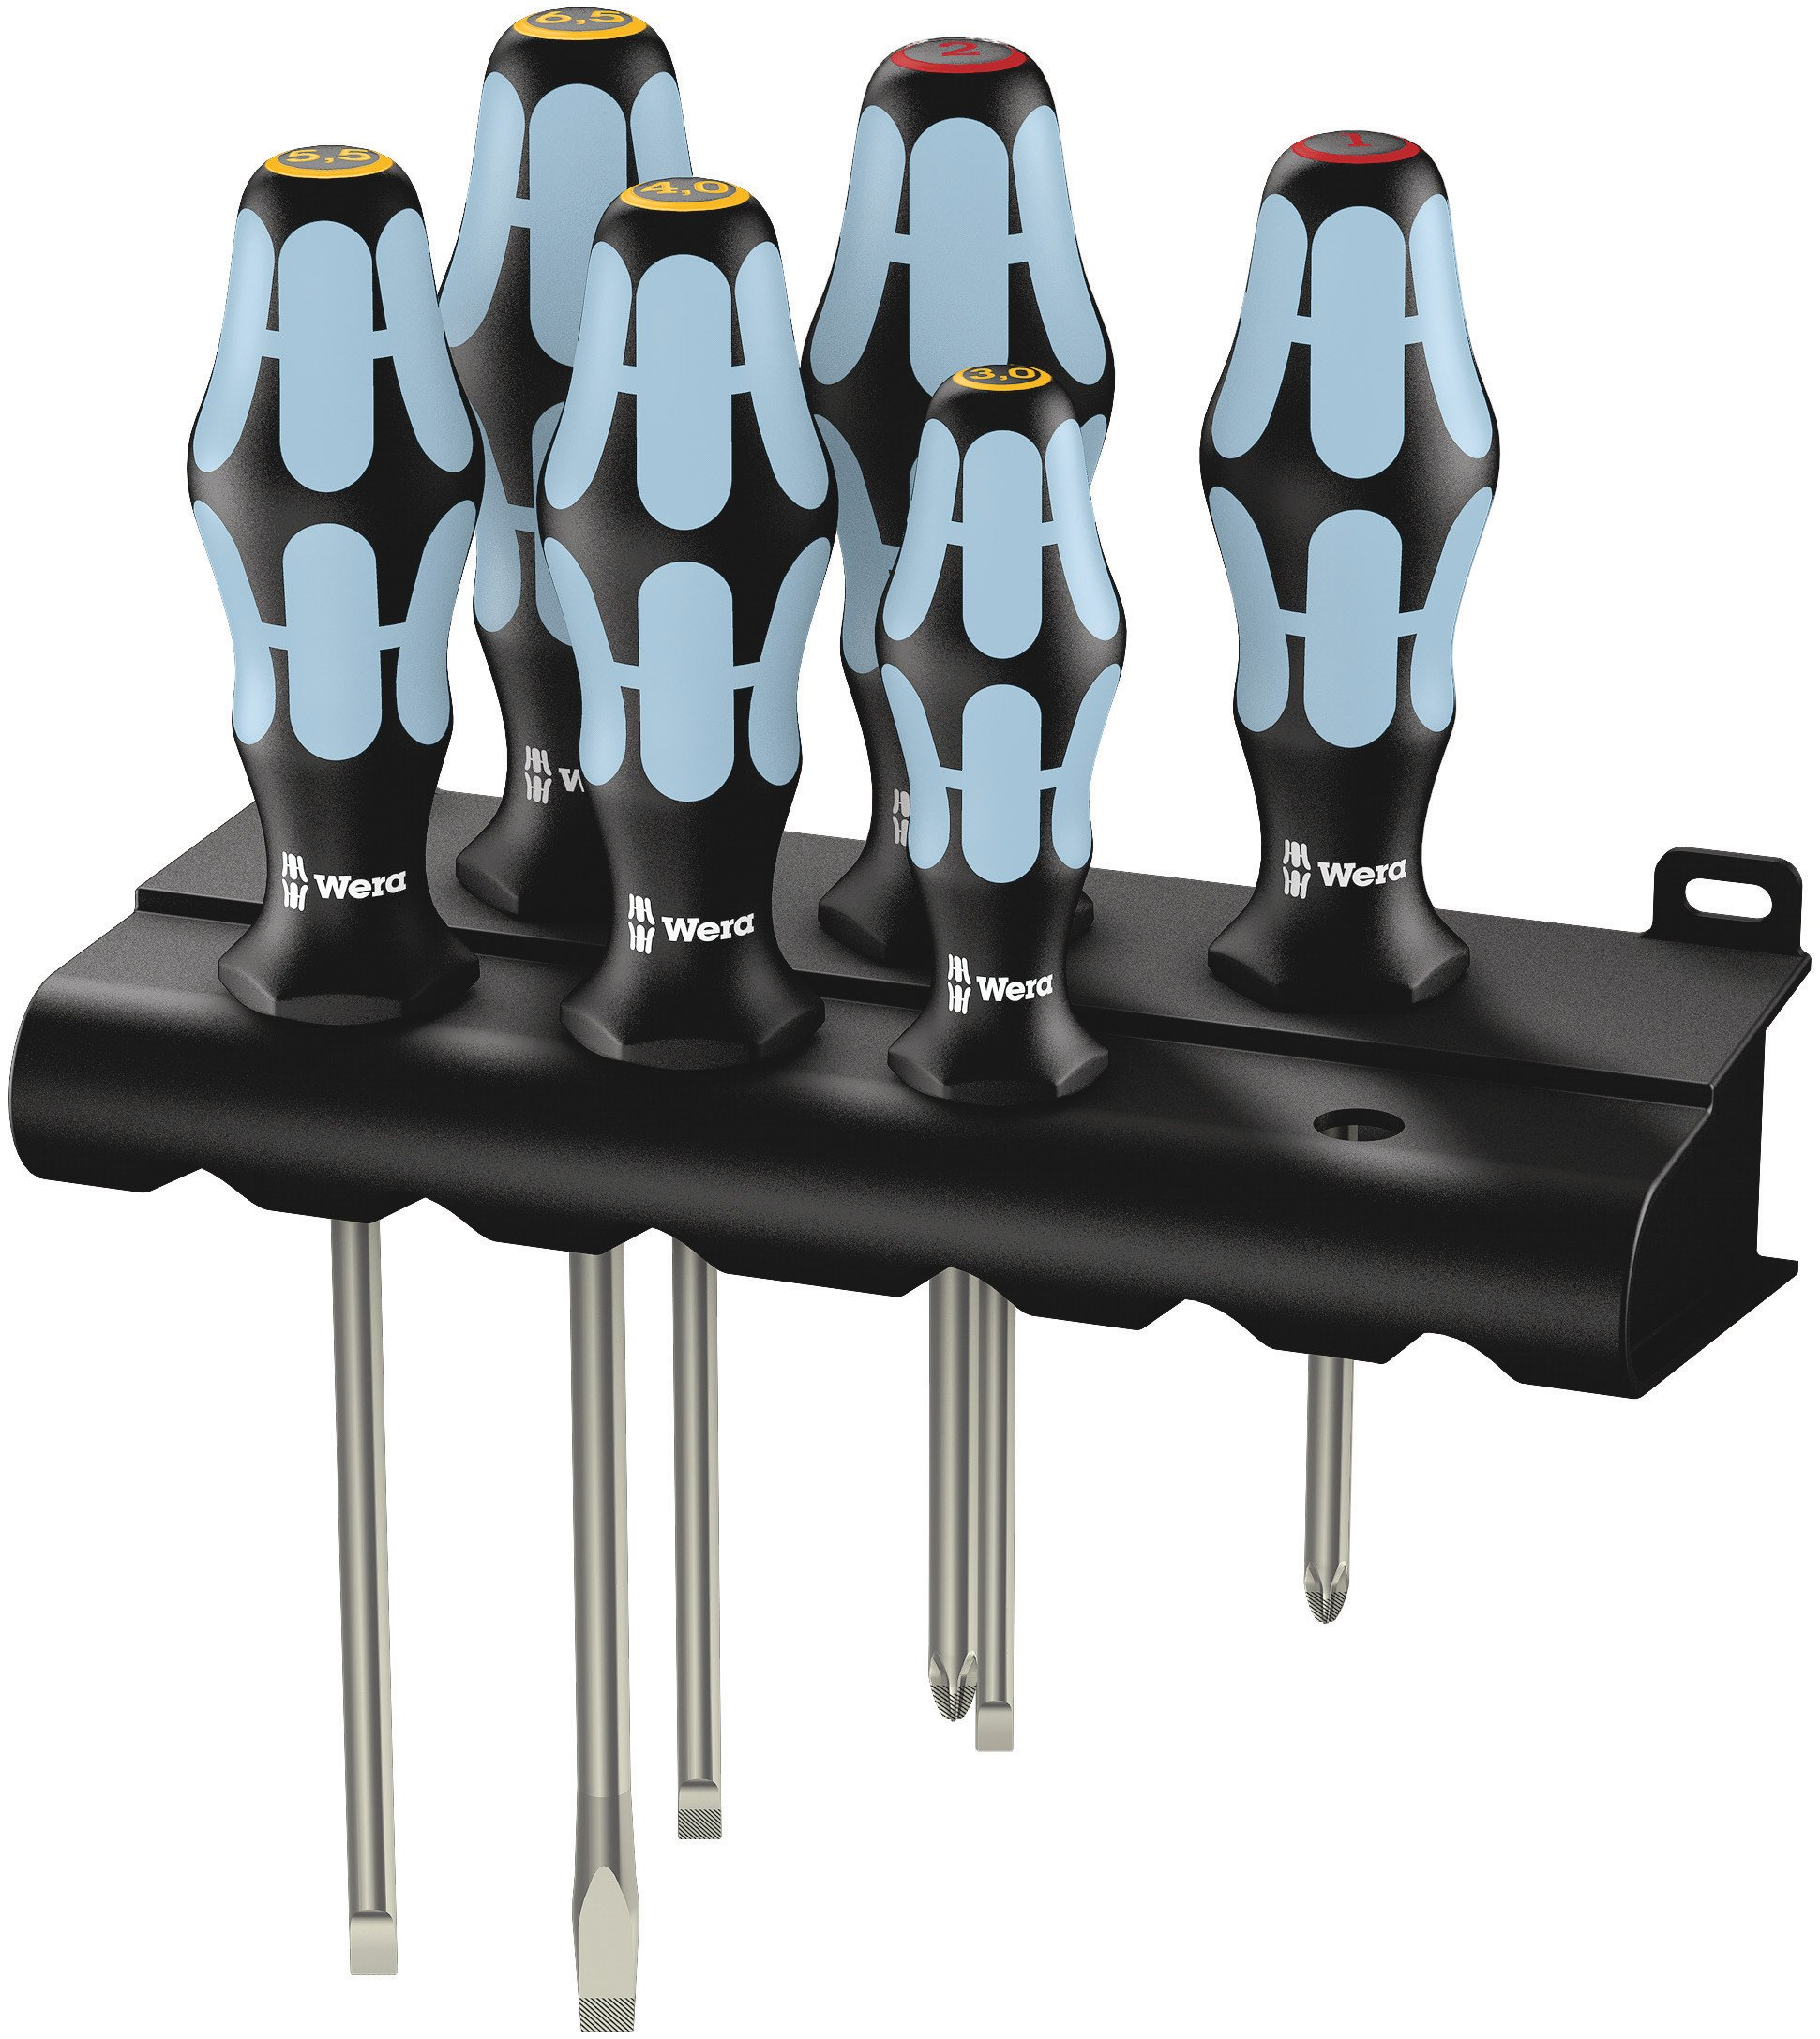 Wera 05032060001 Kraftform Stainless 3334/6 Stainless Steel Slotted/Phillips Screwdriver Set and Rack, 6-Piece